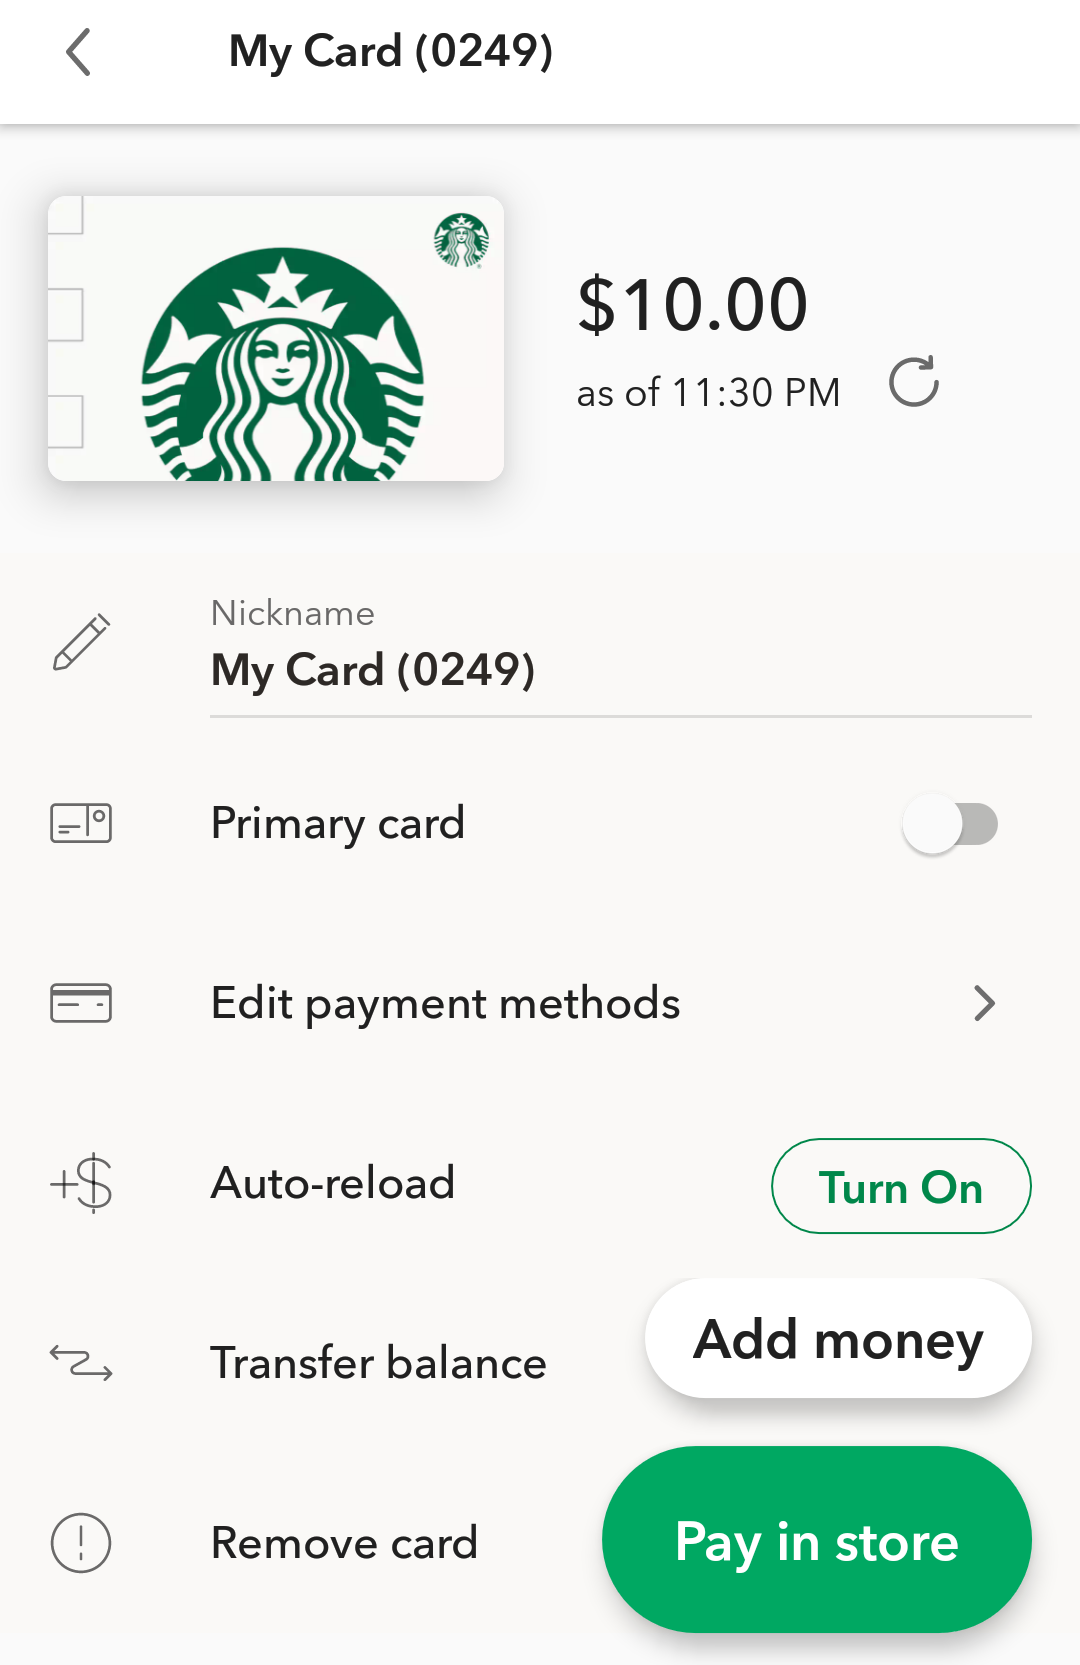 starbucks gift card shown in app